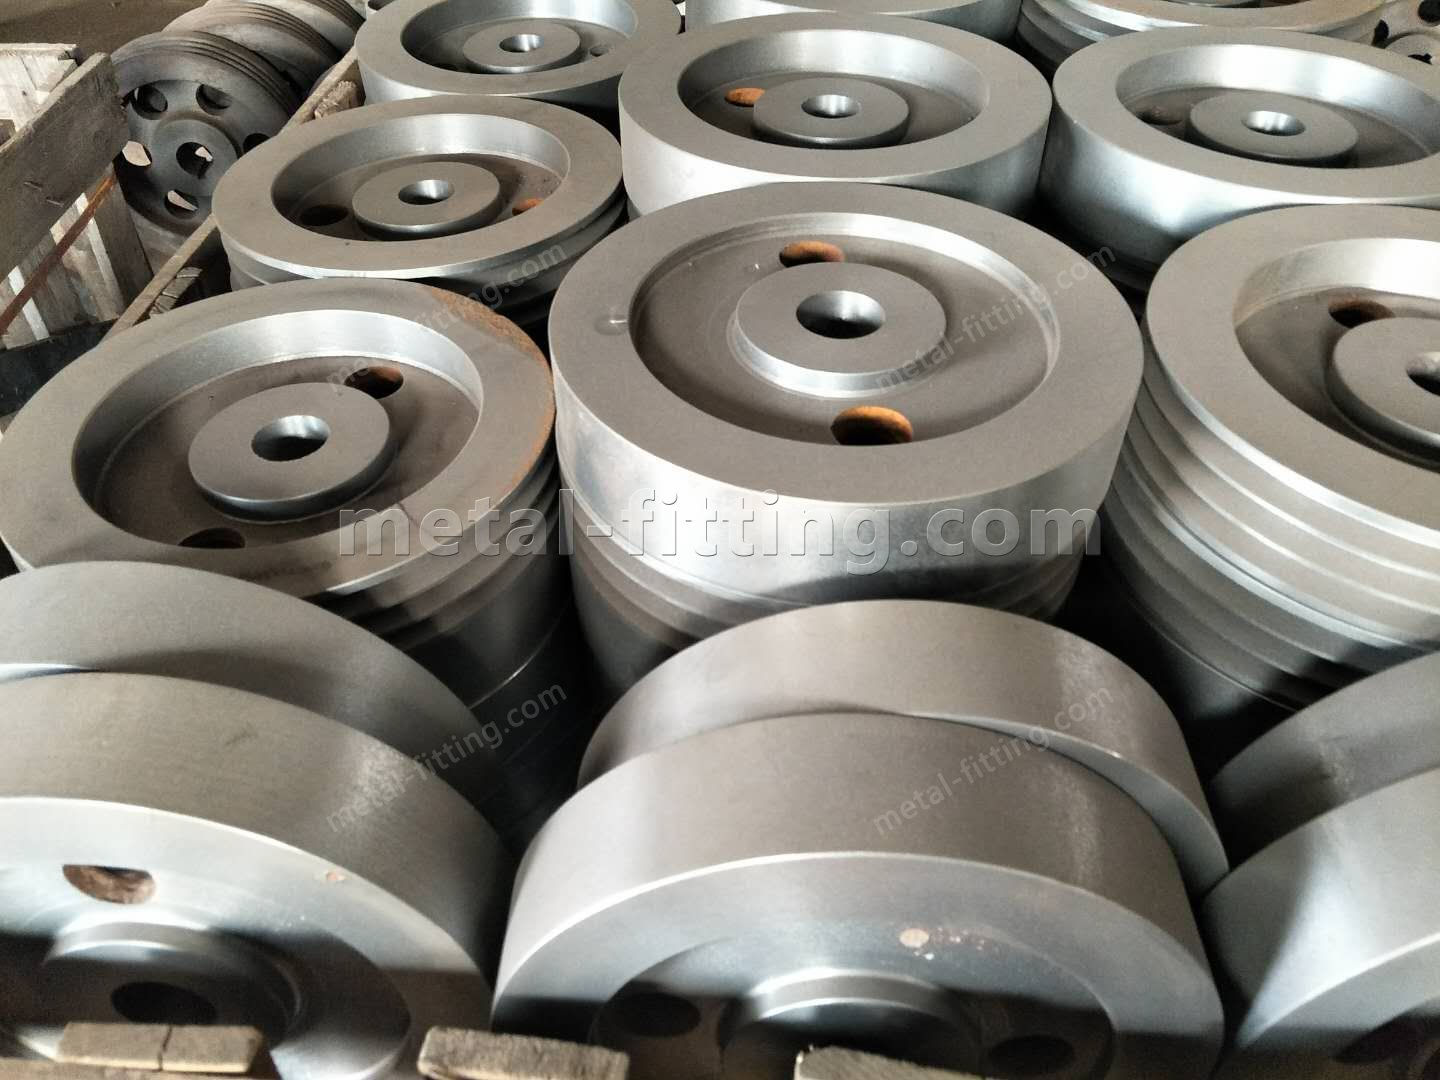 pully,cast iron pully,iron gear ring for concrete mixer-694618319562796398